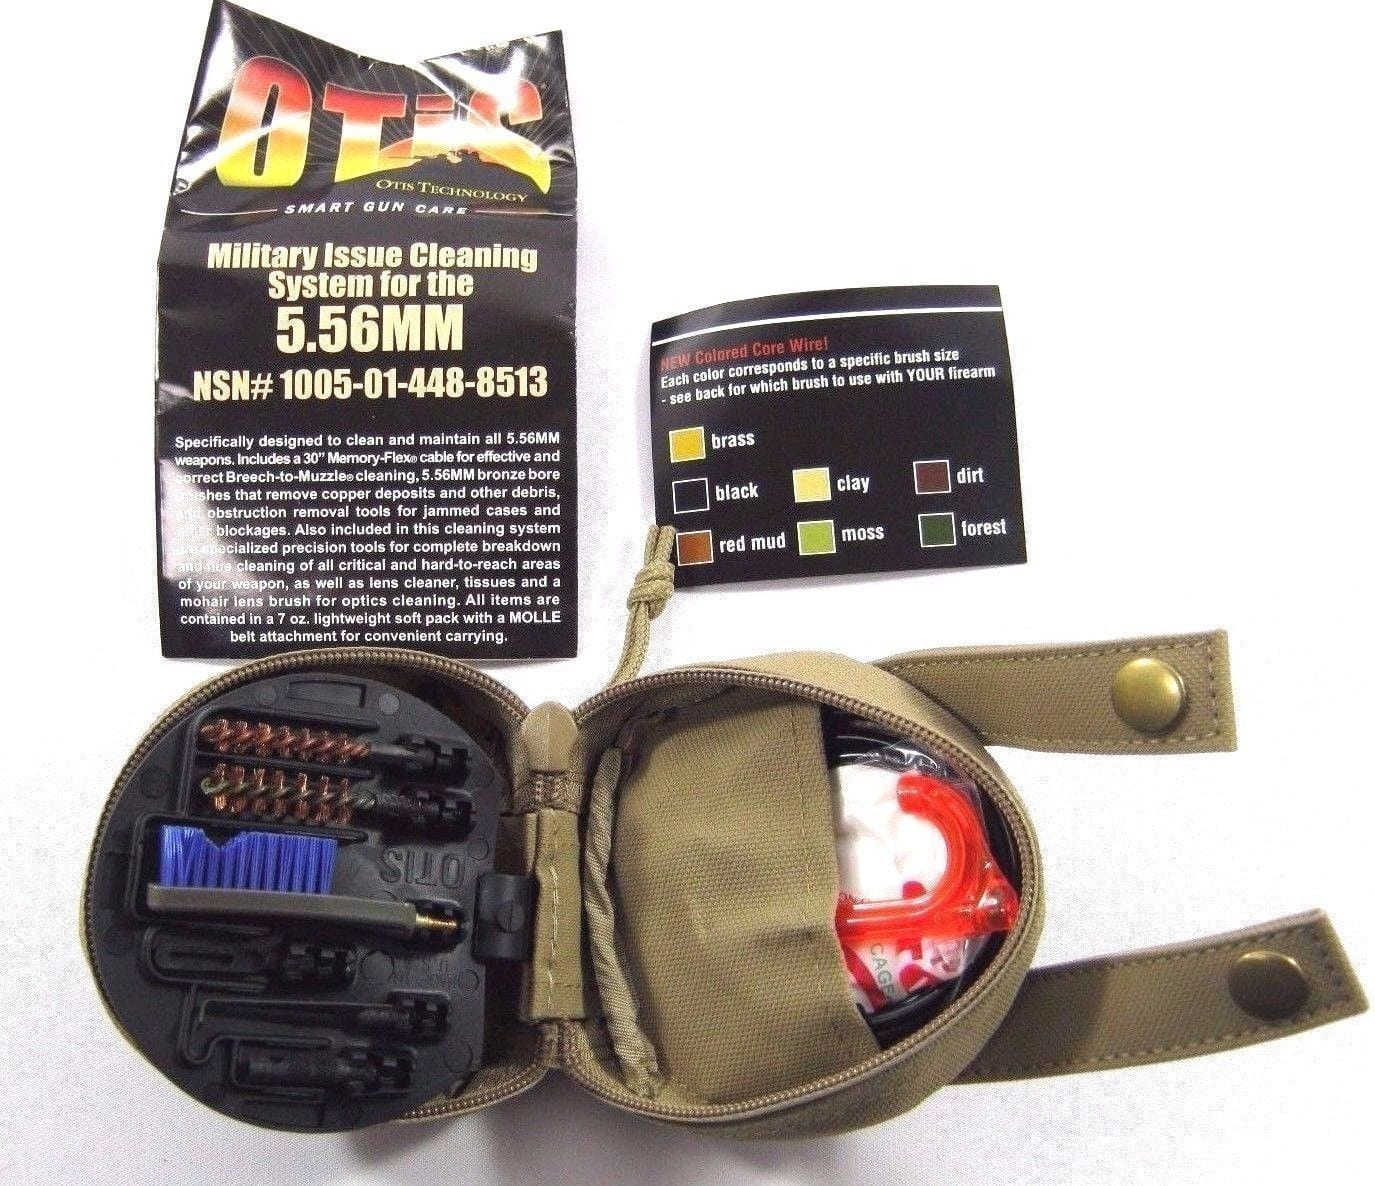 Otis 5.56mm Military Gun Cleaning System Kit, 223-2